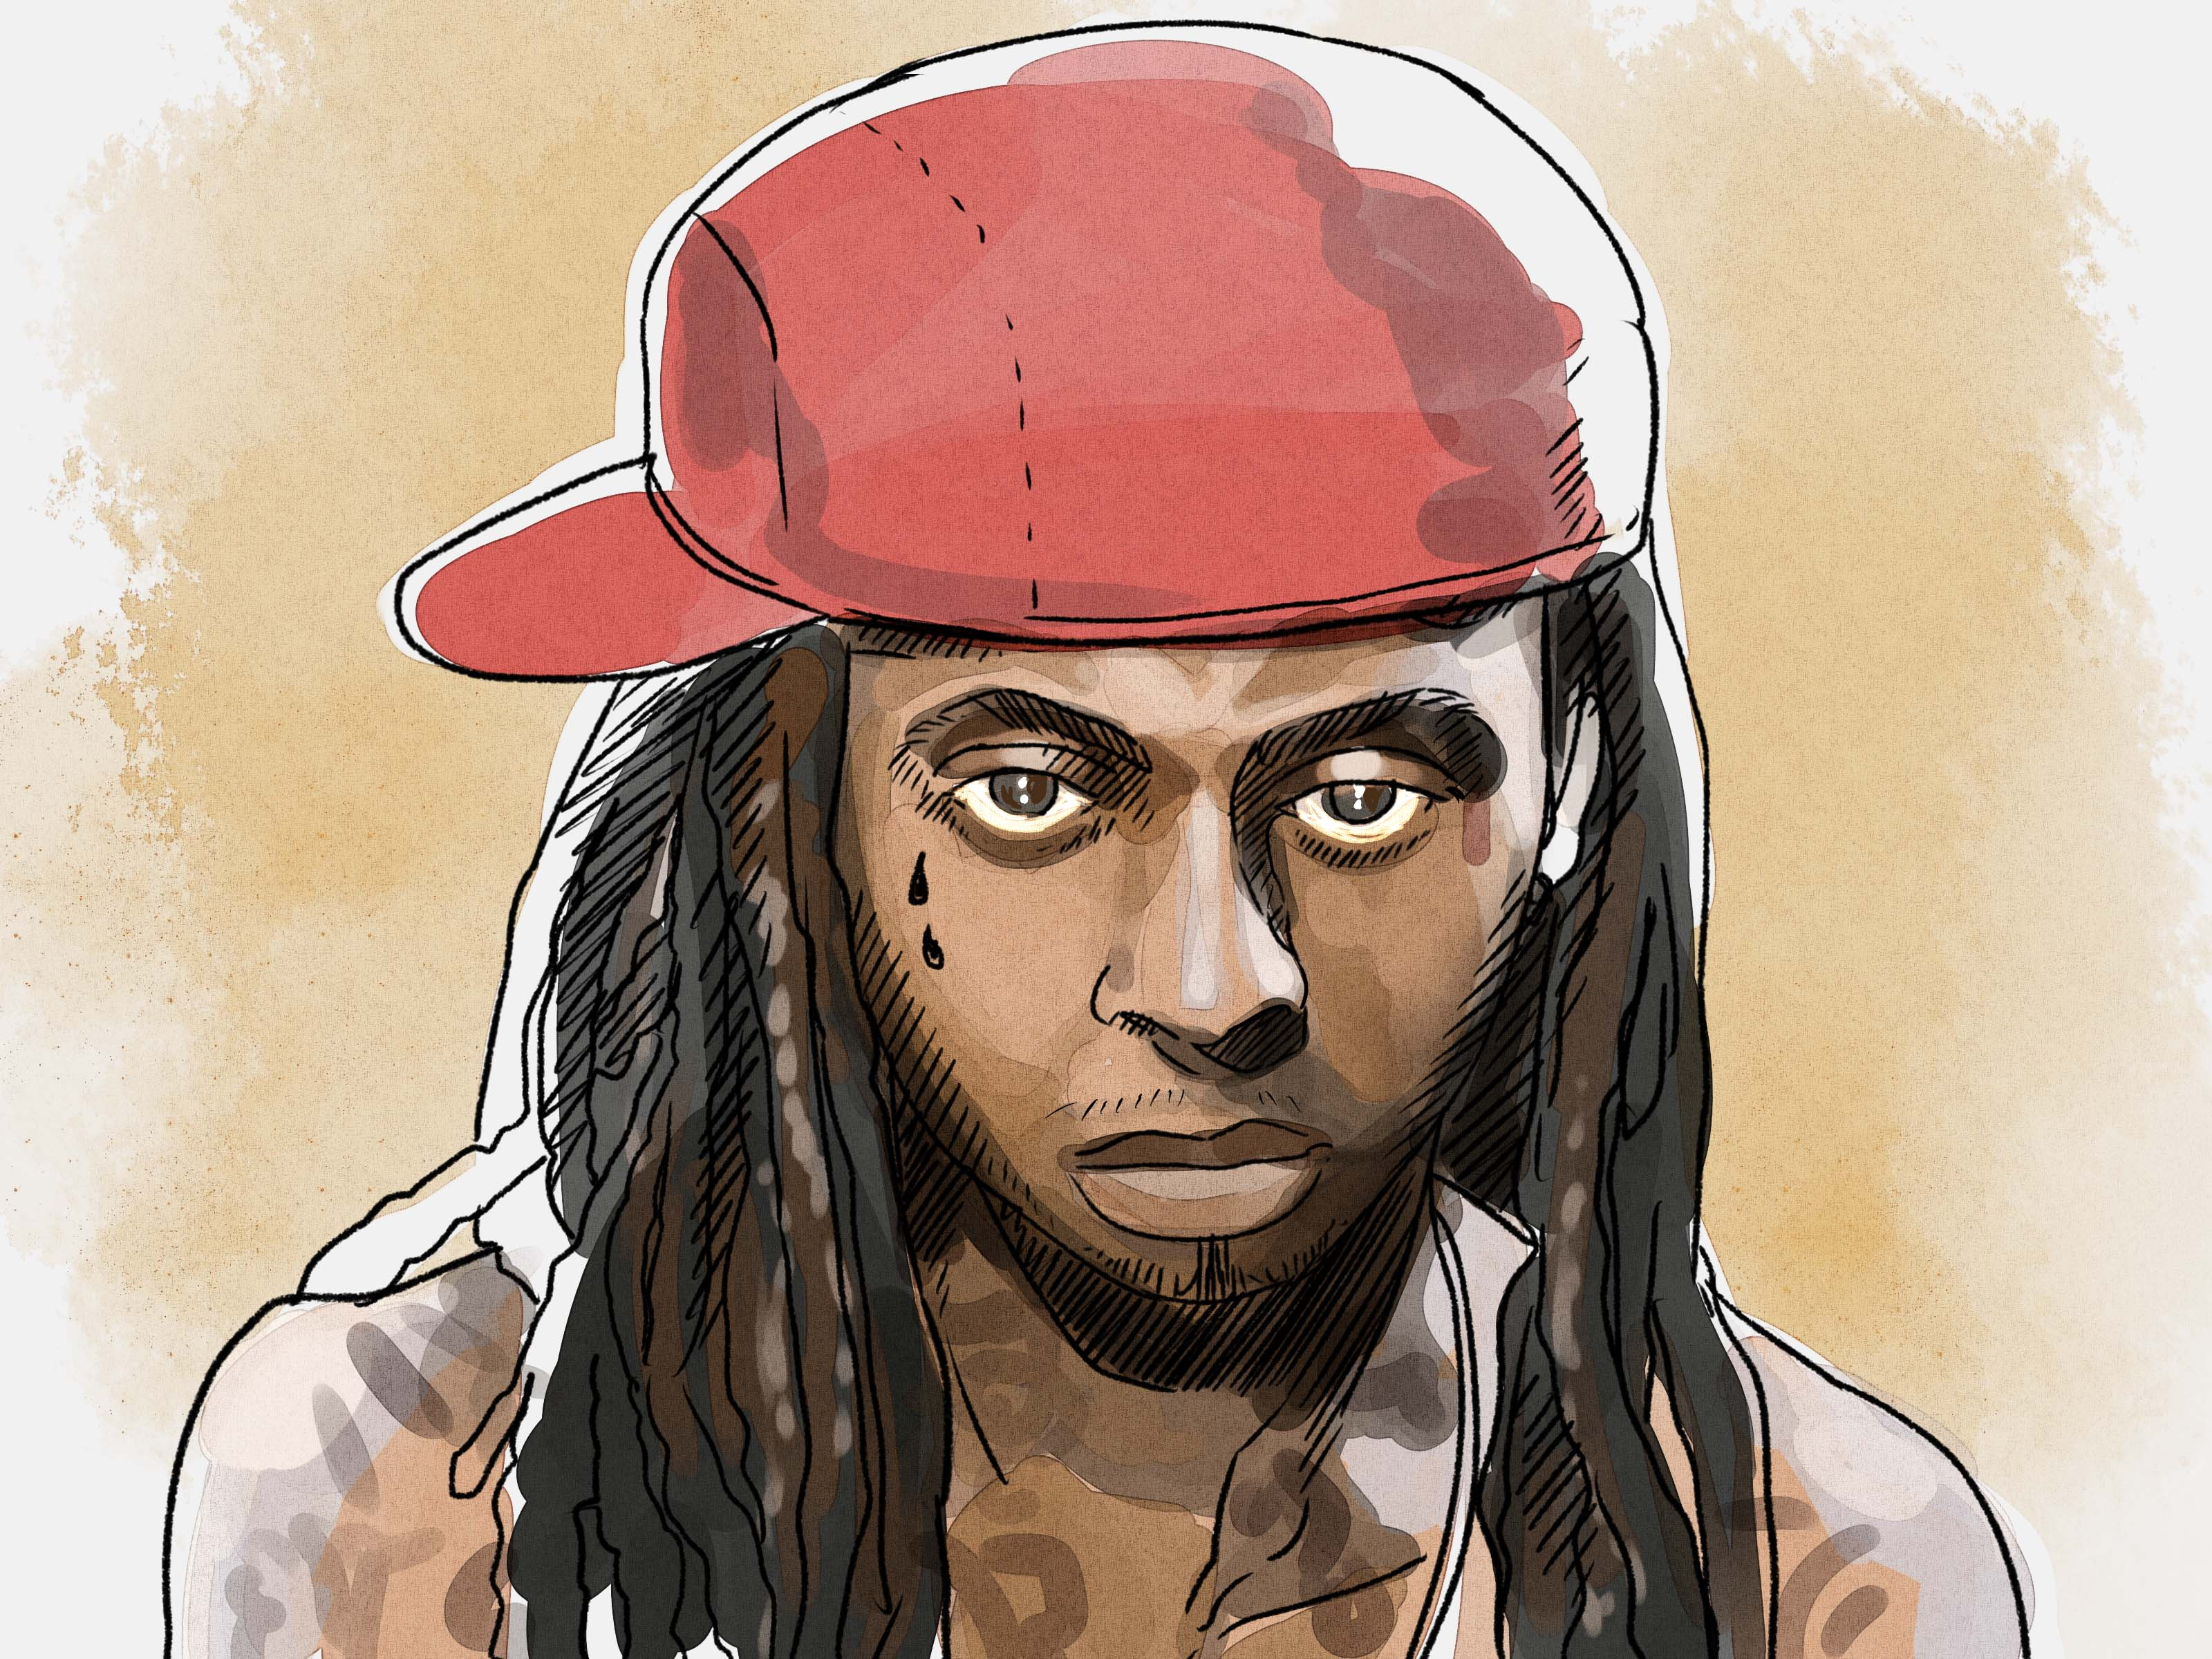 Drawn pice lil wayne To Lil How Wayne: Draw